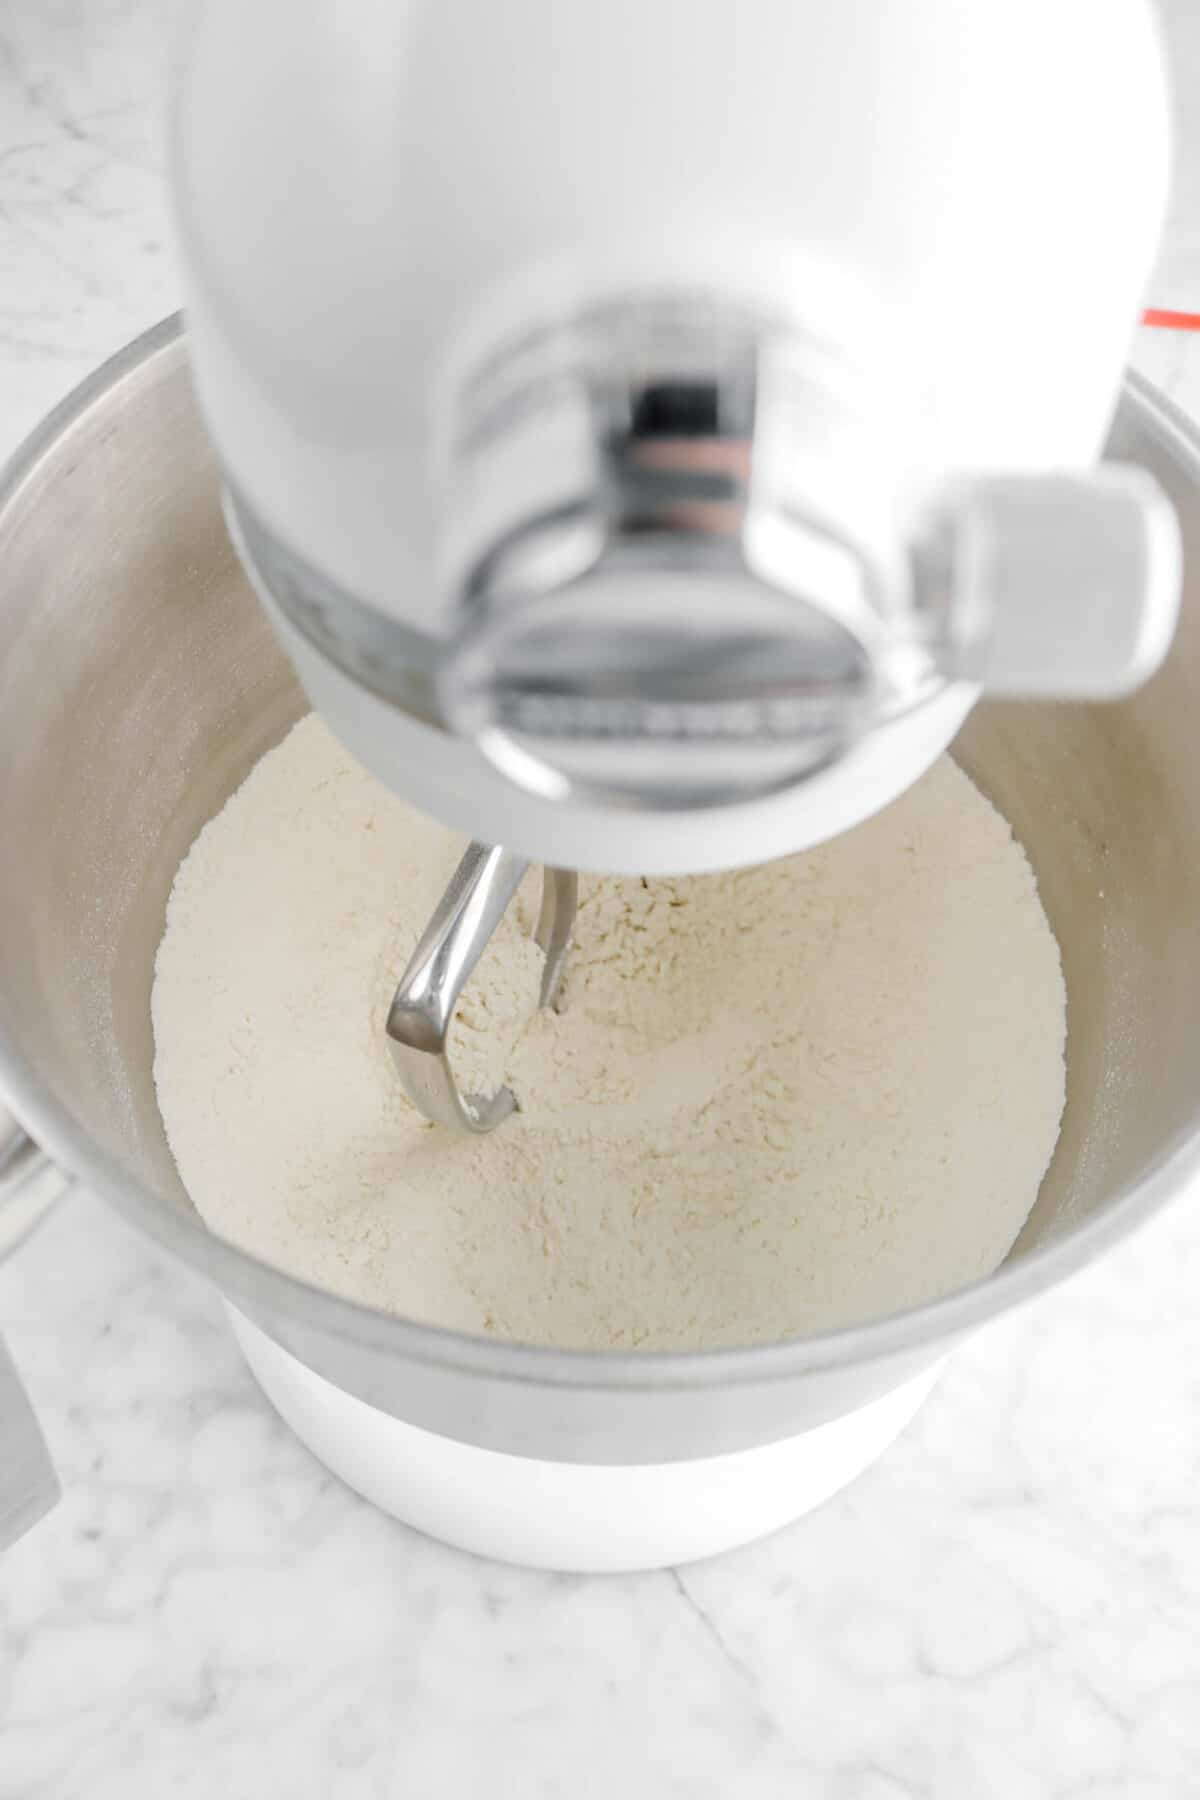 dry ingredients stirred in mixer